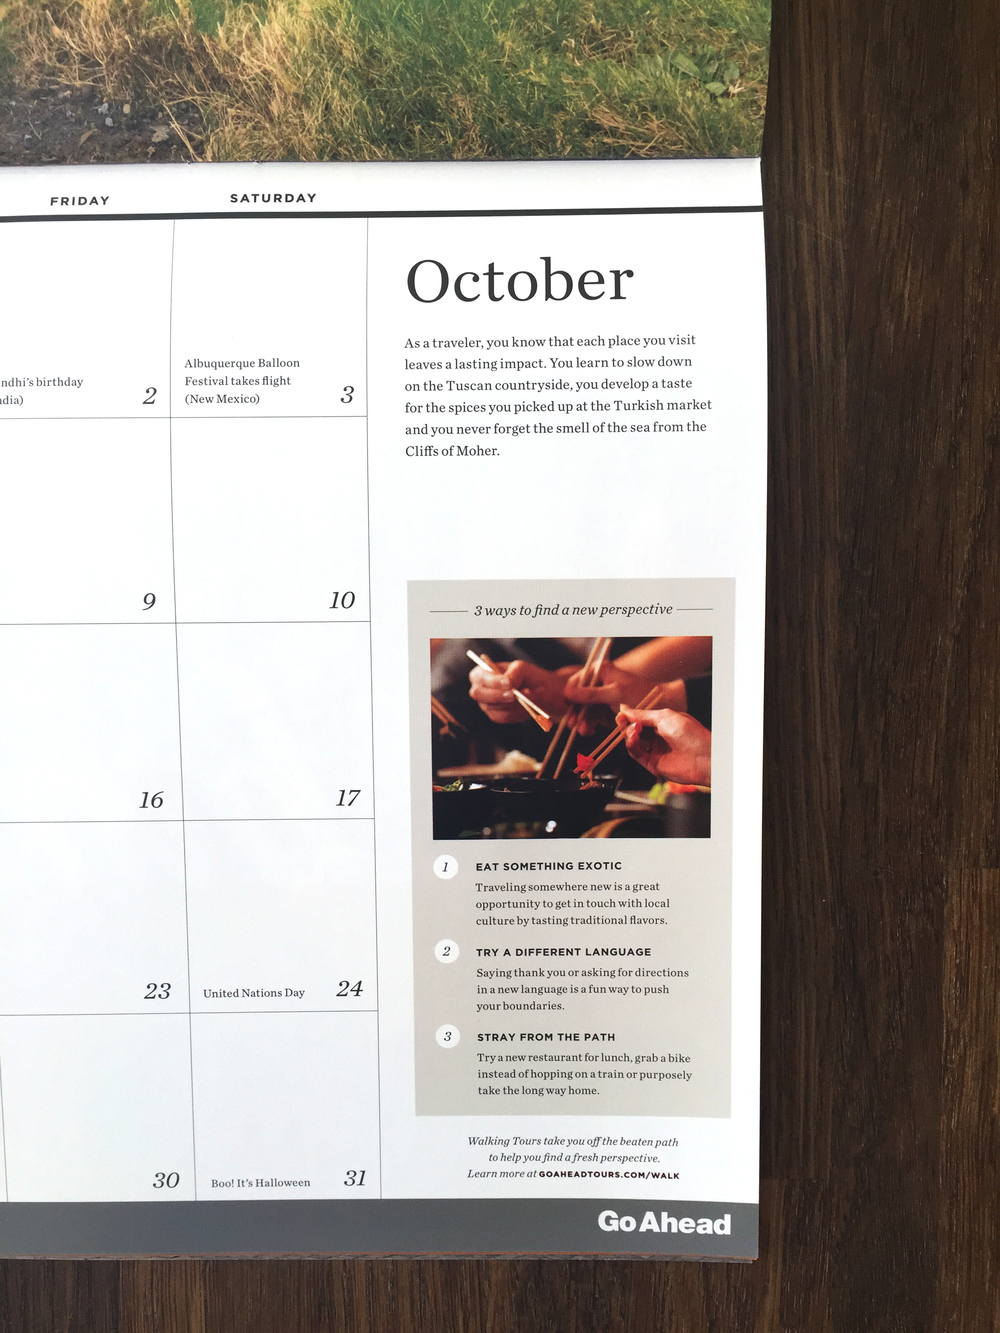 Calendar_October closeup2.jpg